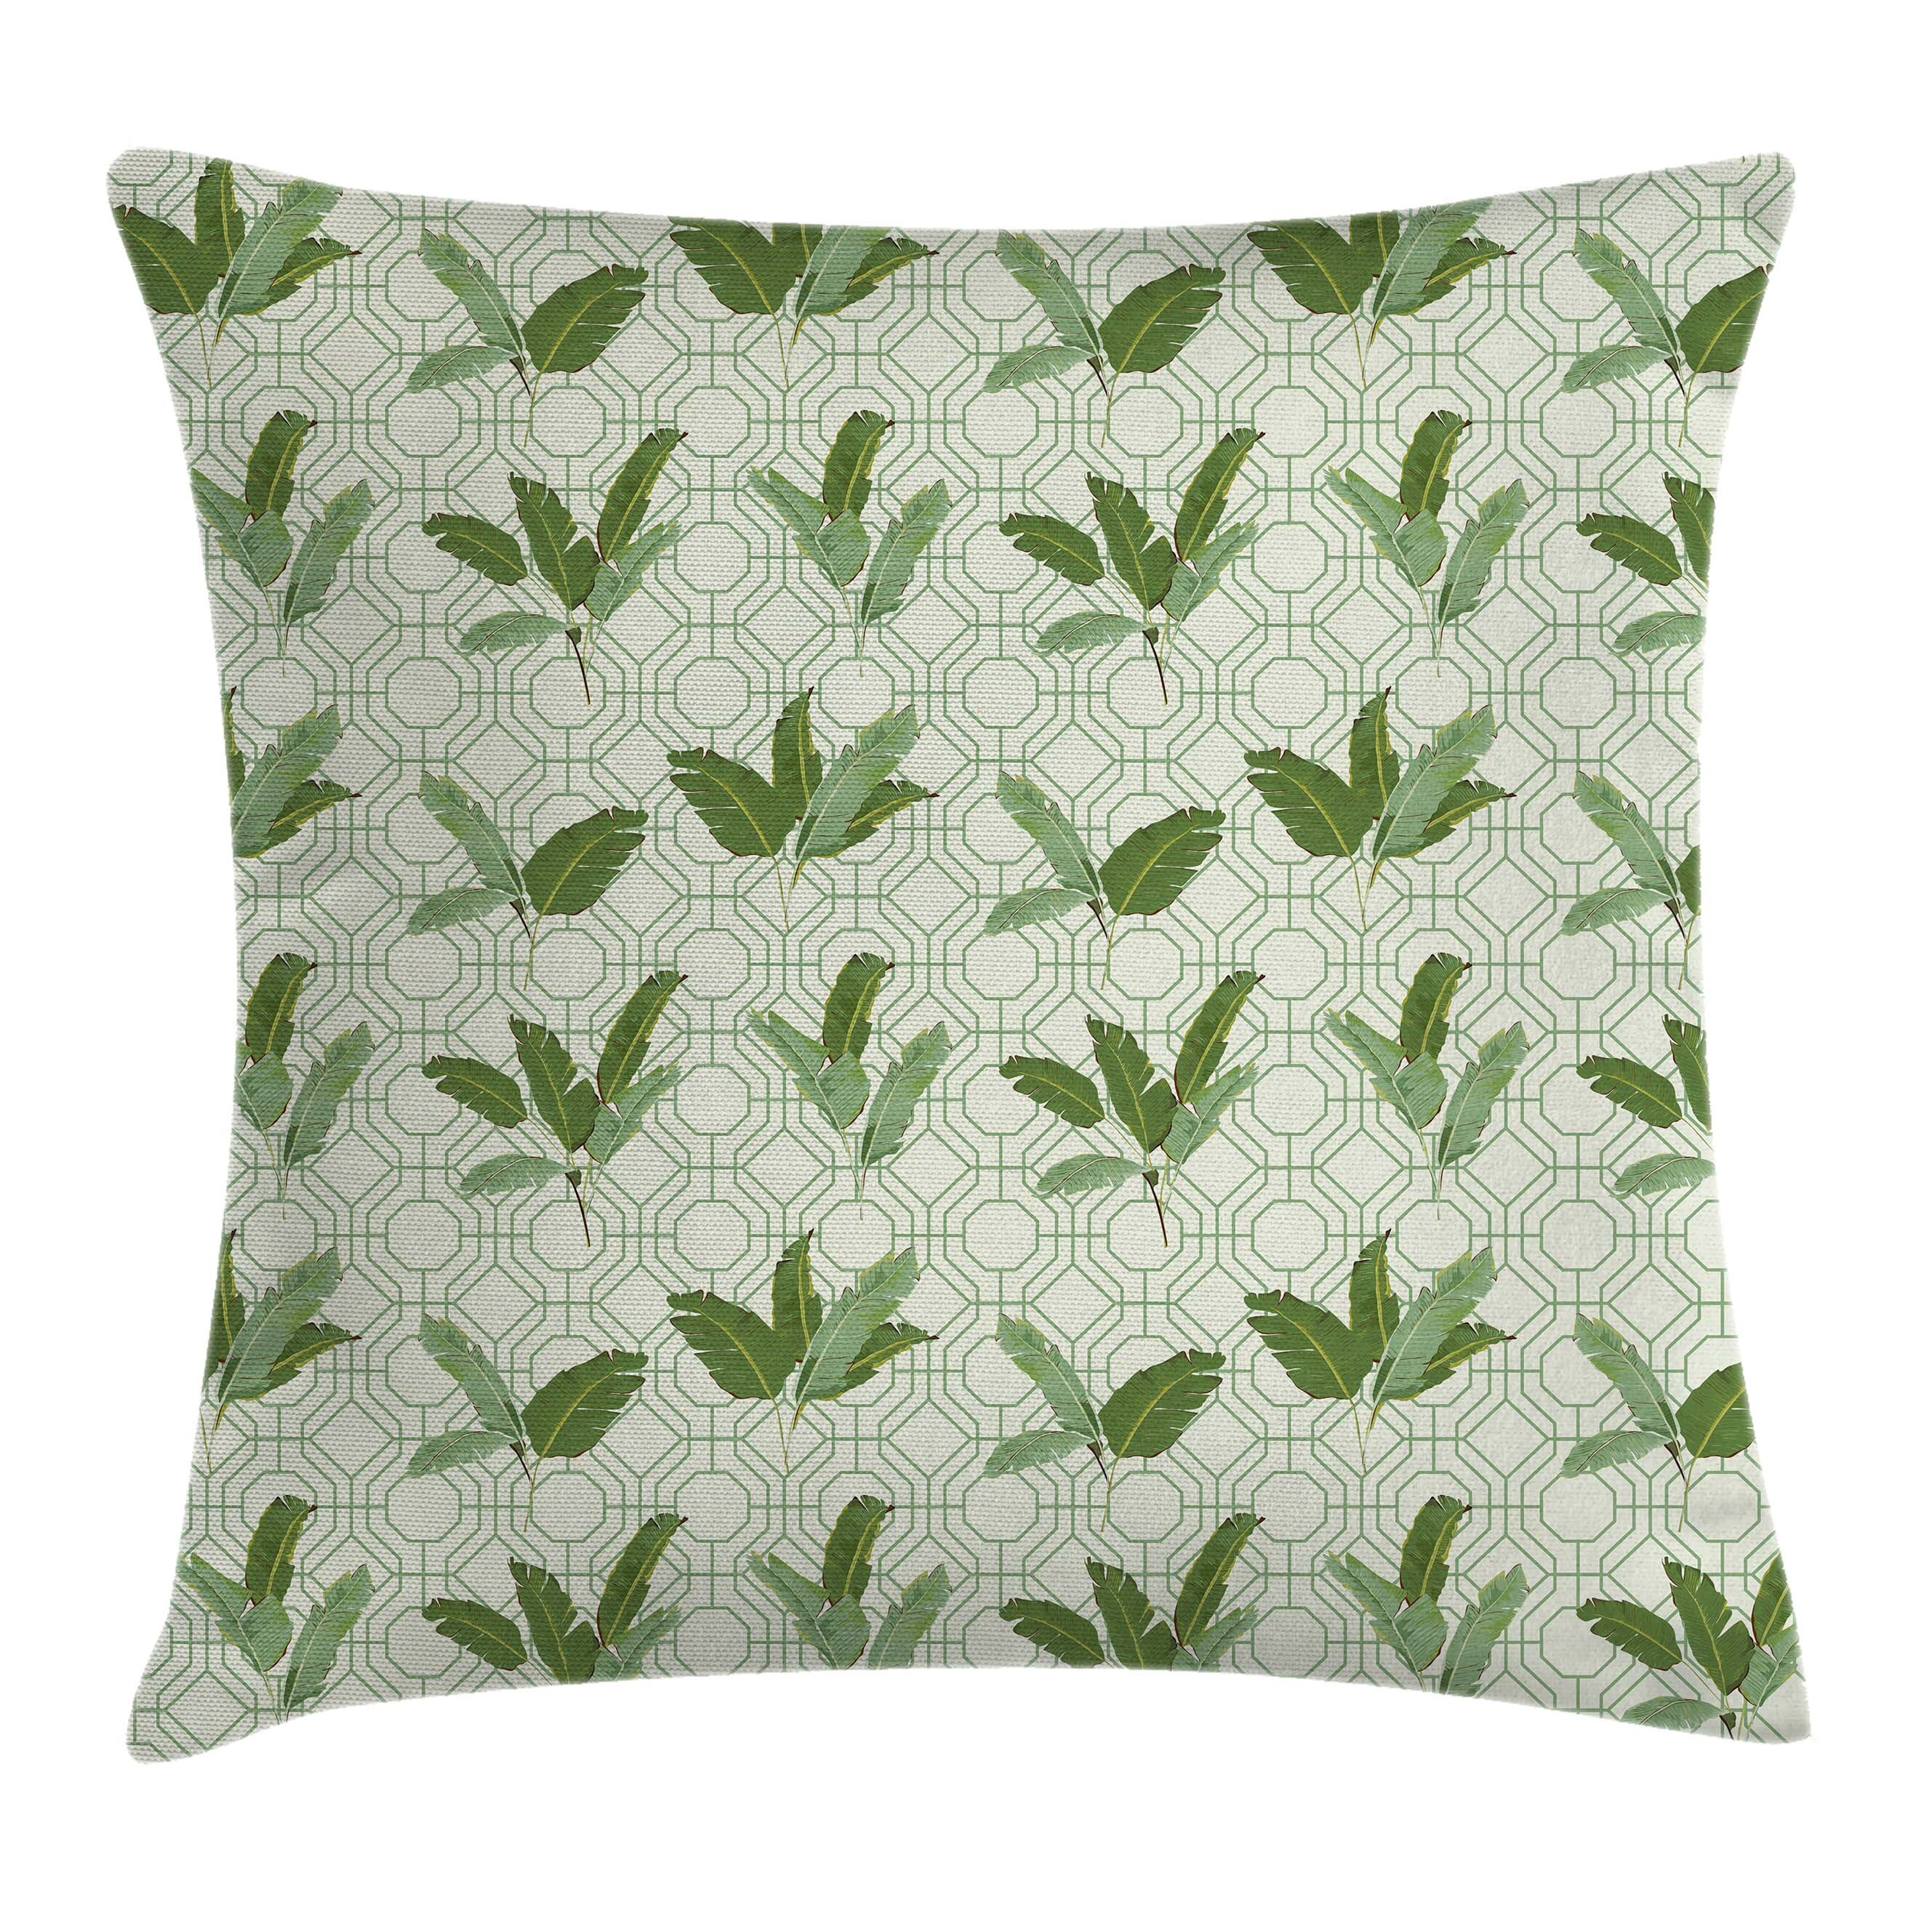 Modern Contemporary Ambesonne Throw Pillows You Ll Love In 2021 Wayfair